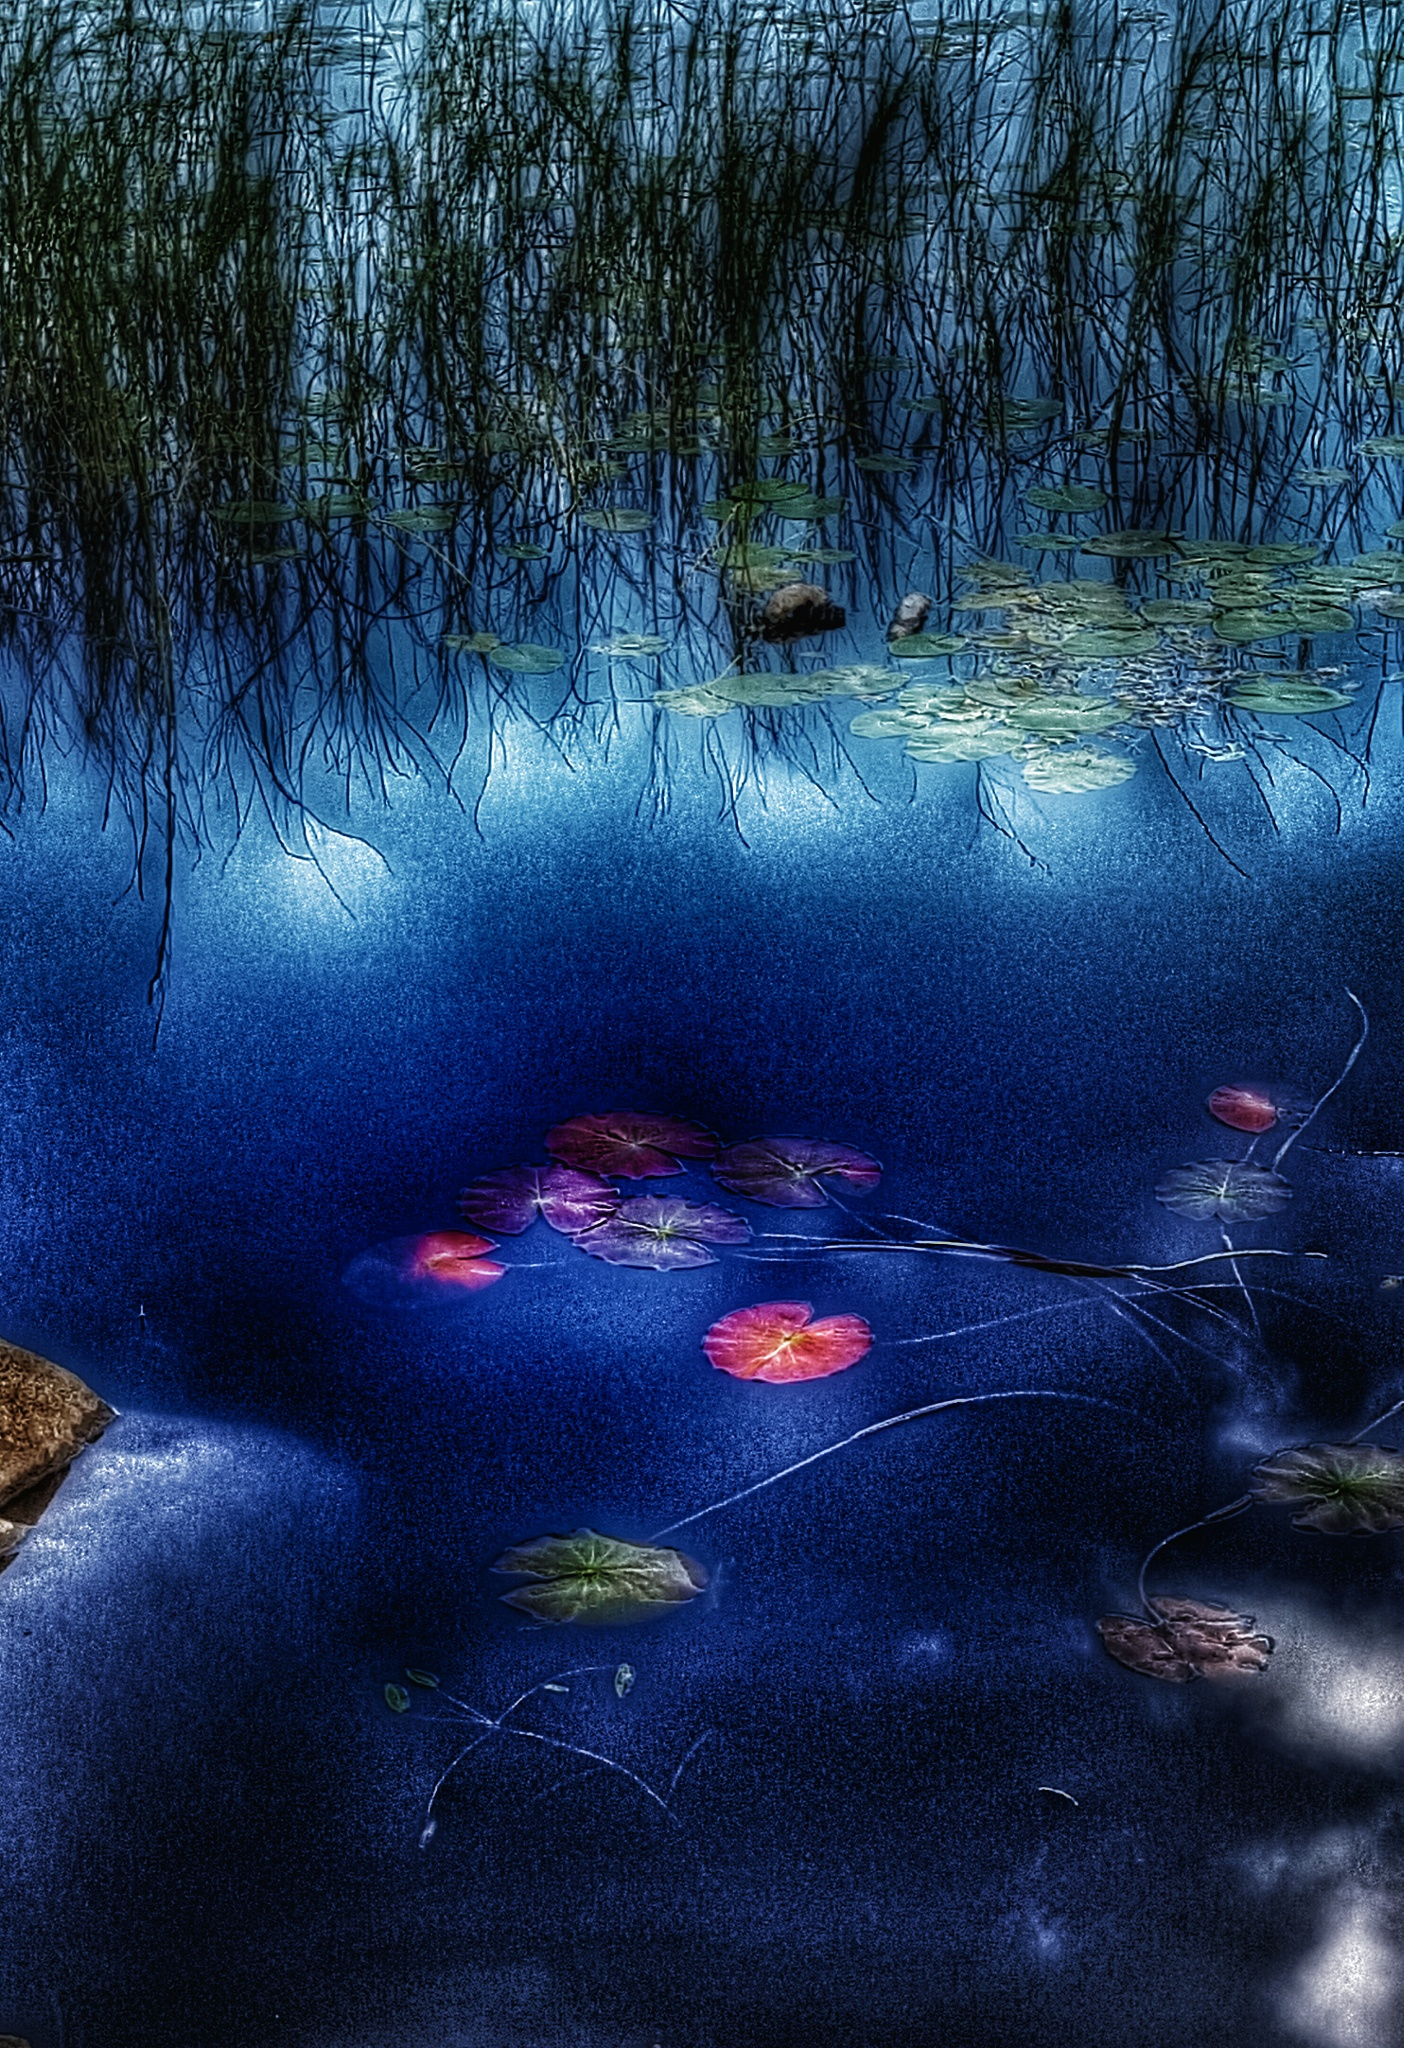 Waterlilies by Anna Lindberg